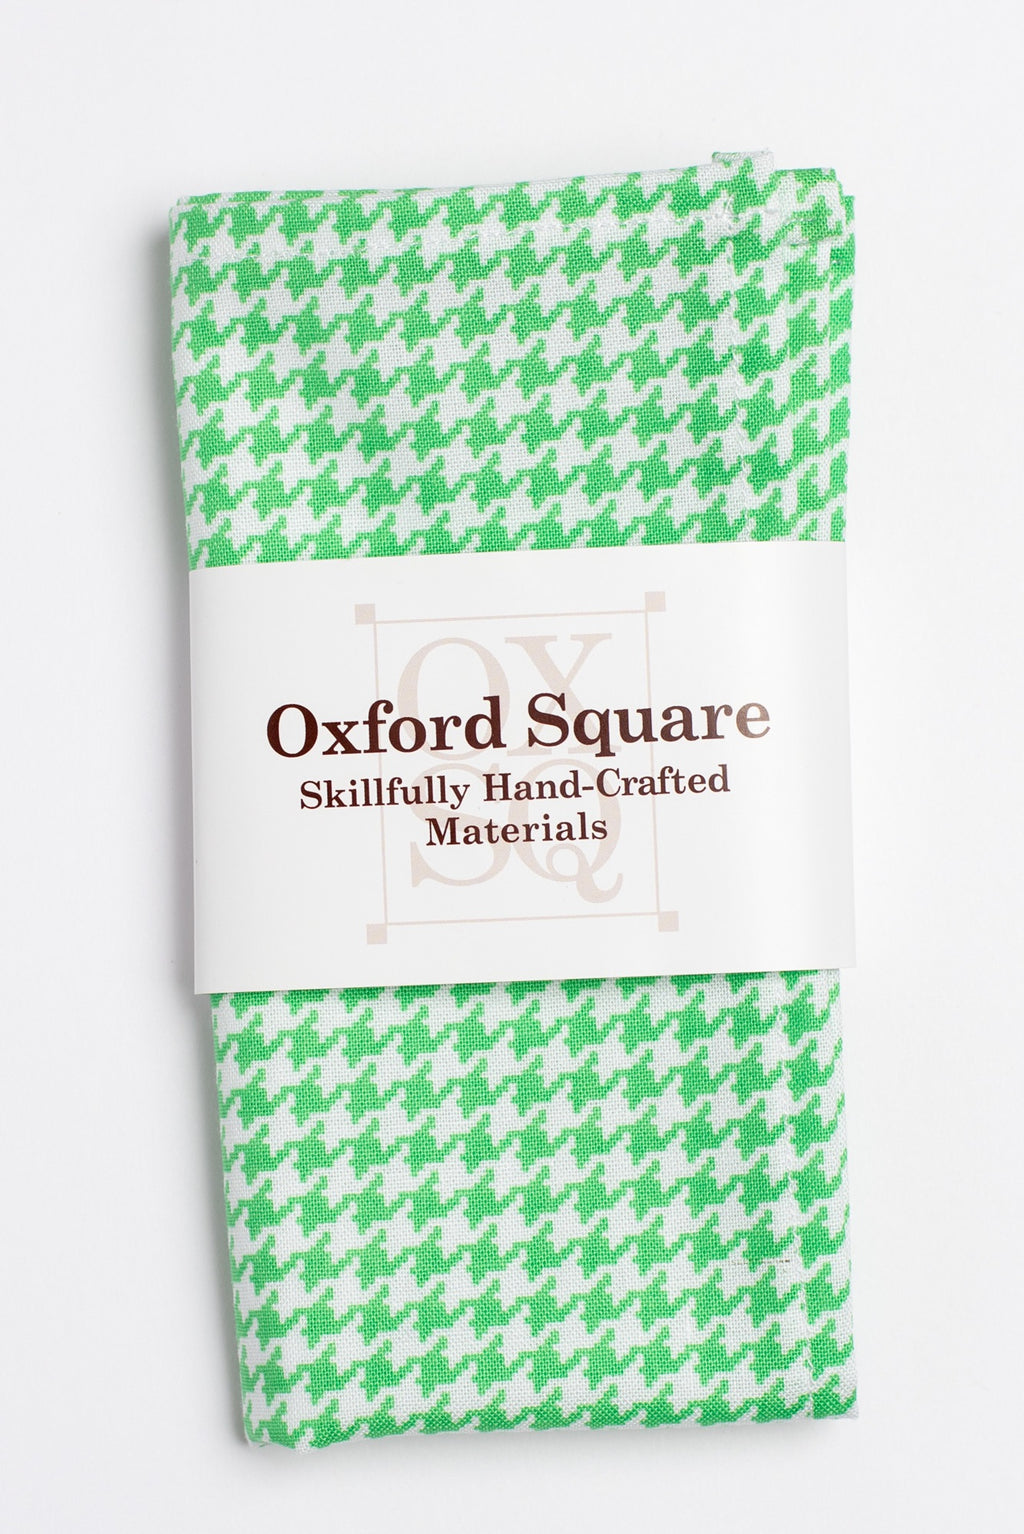 green and white houndstooth pattern pocket square - Oxford Square